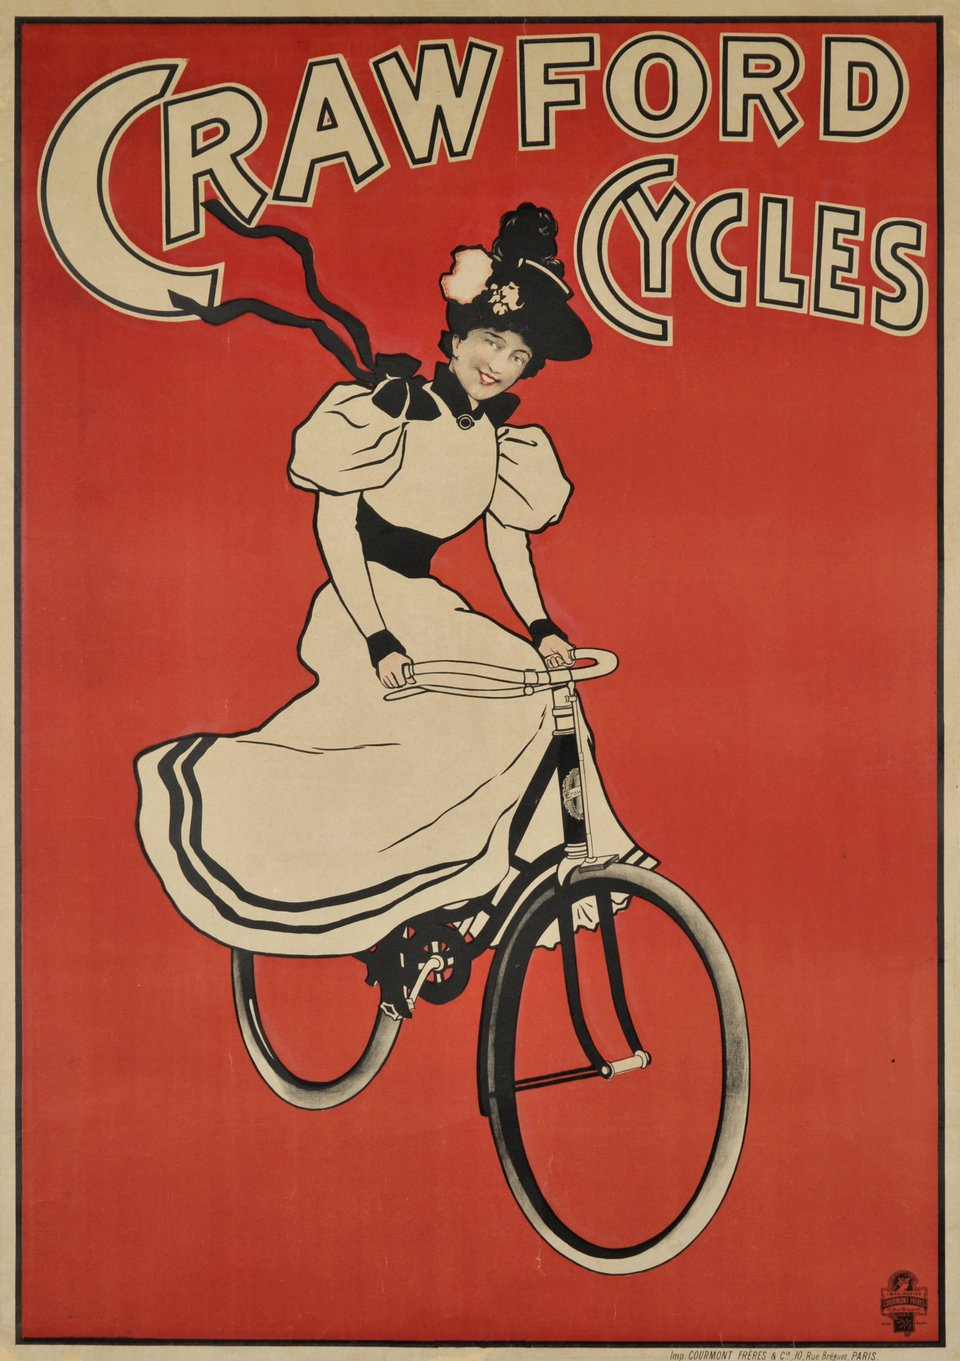 Crawford Cycles – Affiche ancienne – ANONYME – 1900